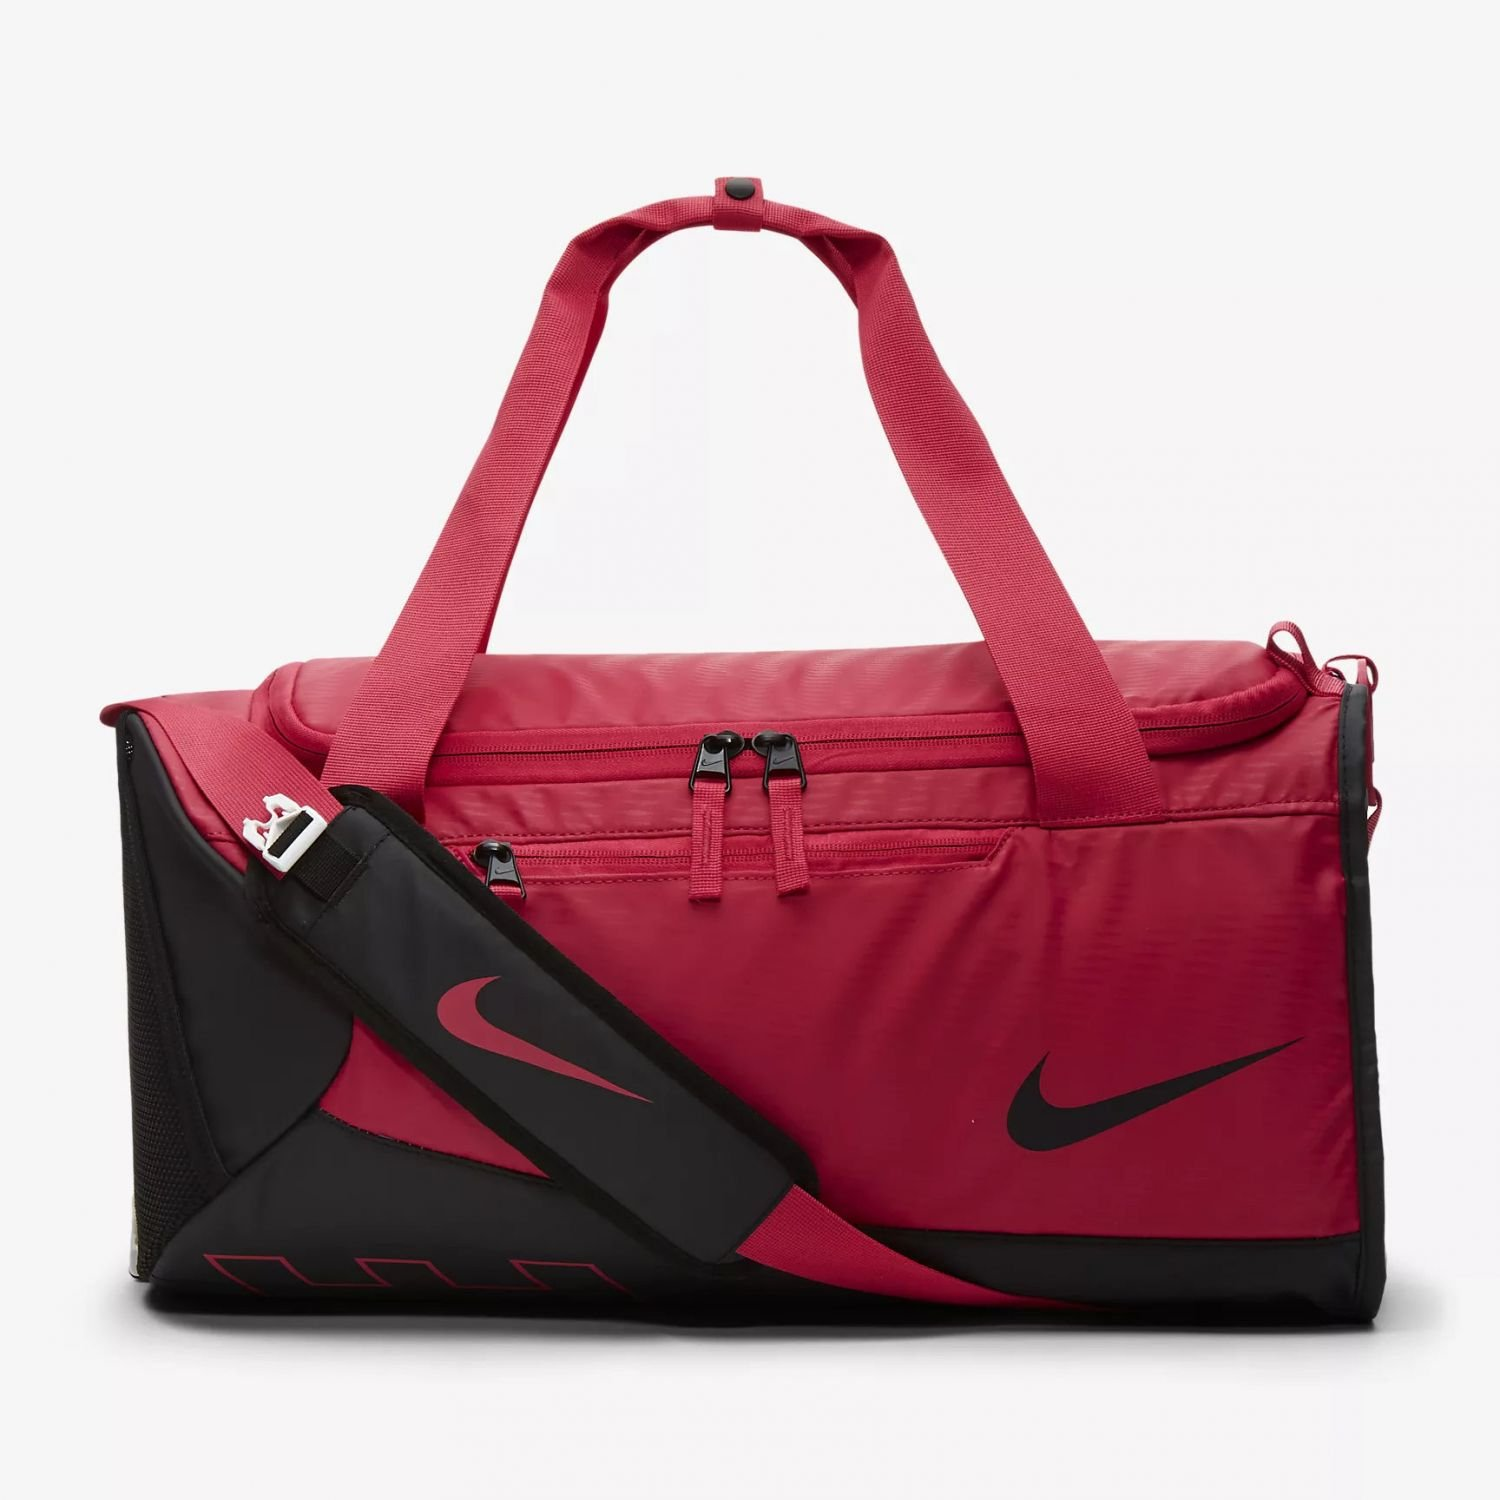 d62f5c38af Nike Teambag Alpha Adapt Crossbody Duffel Bag - Sales Savings on ...